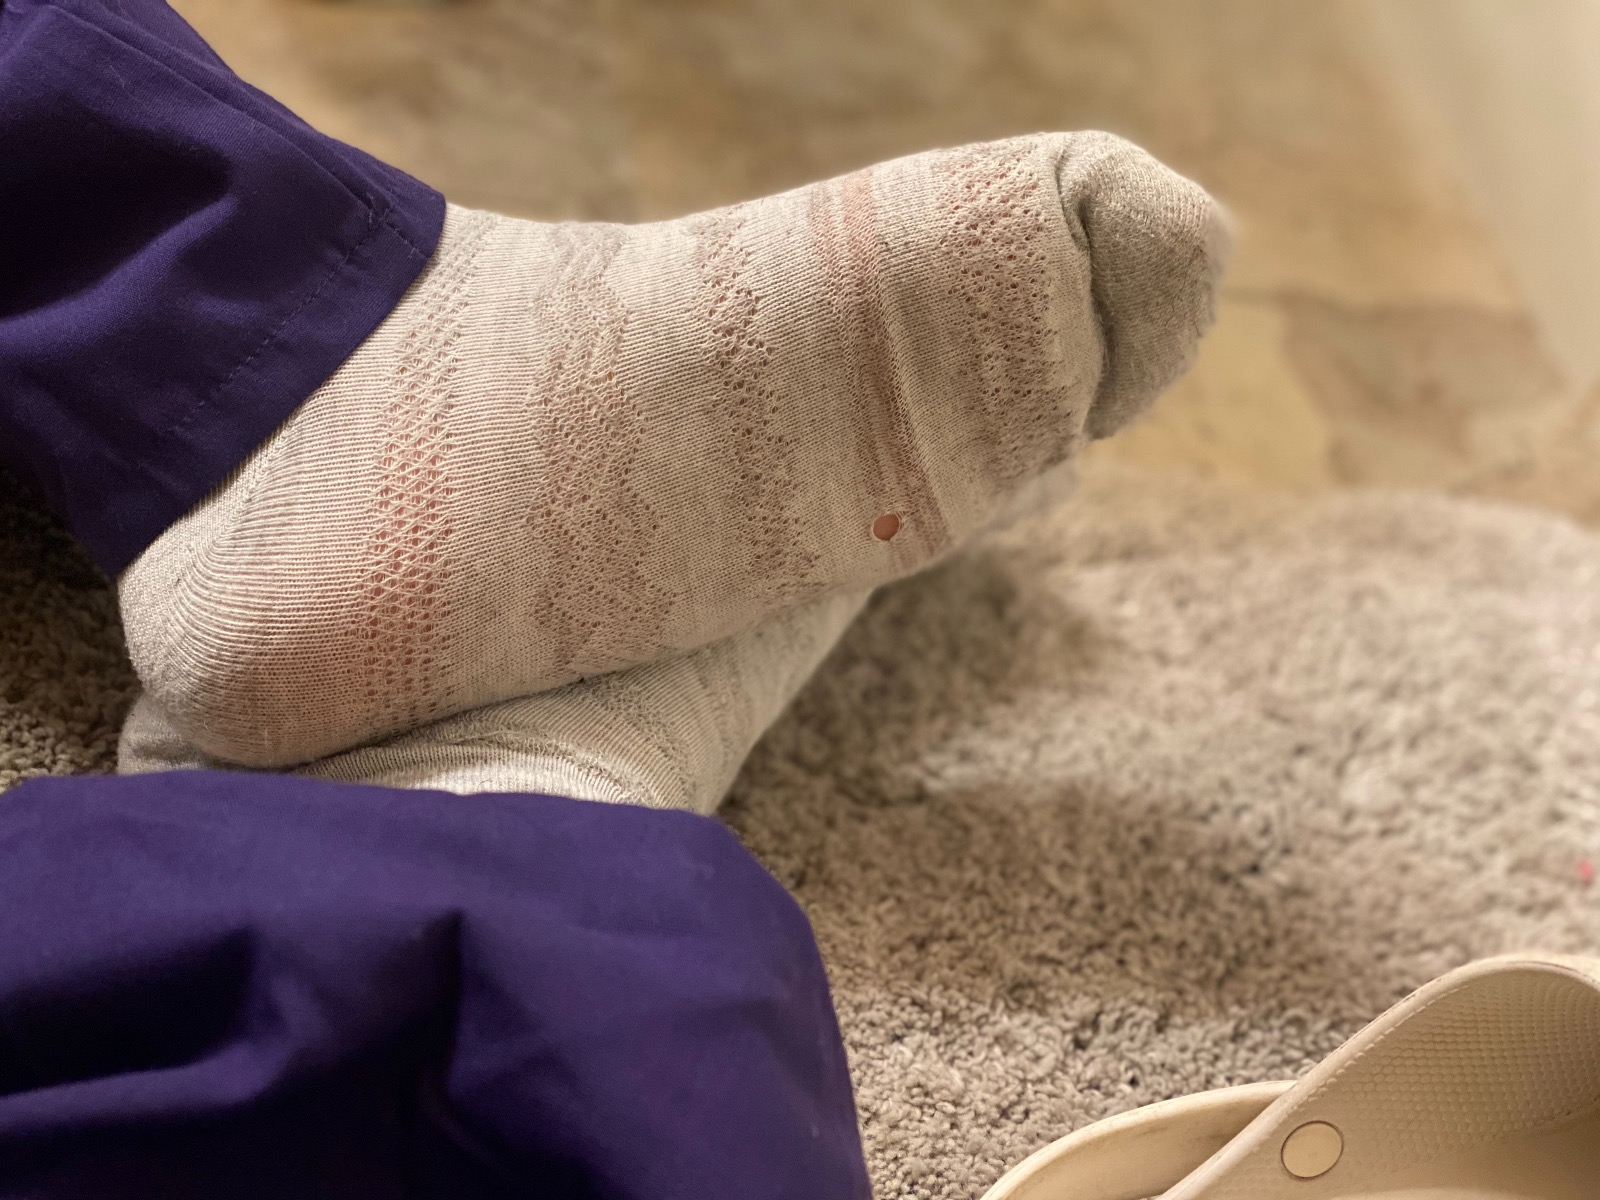 Woman's used dirty smelly socks